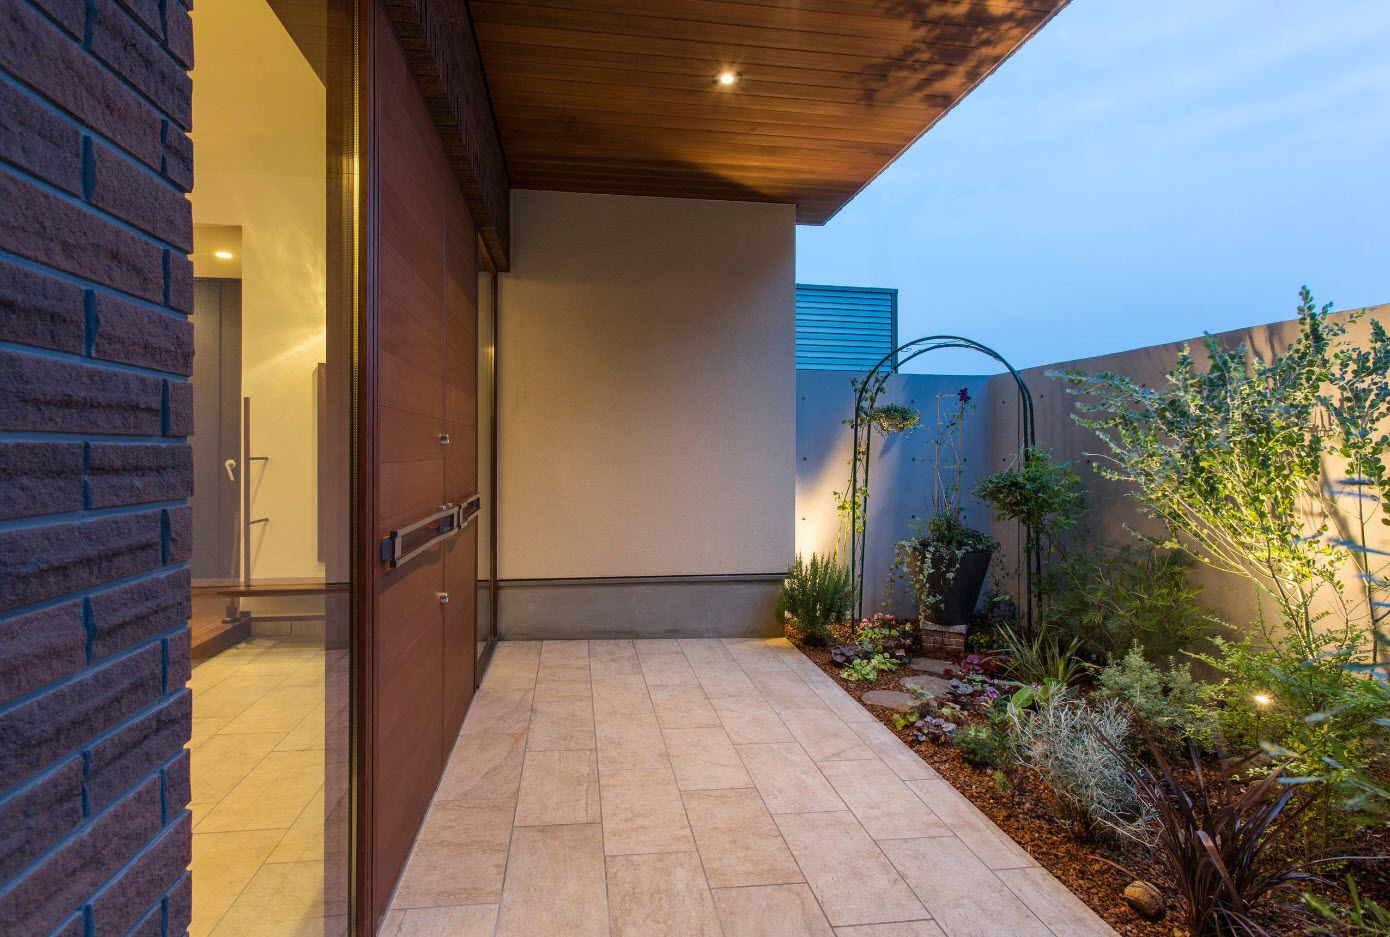 Country House Porch Decoration & Design Ideas. Concreted space in front of the door